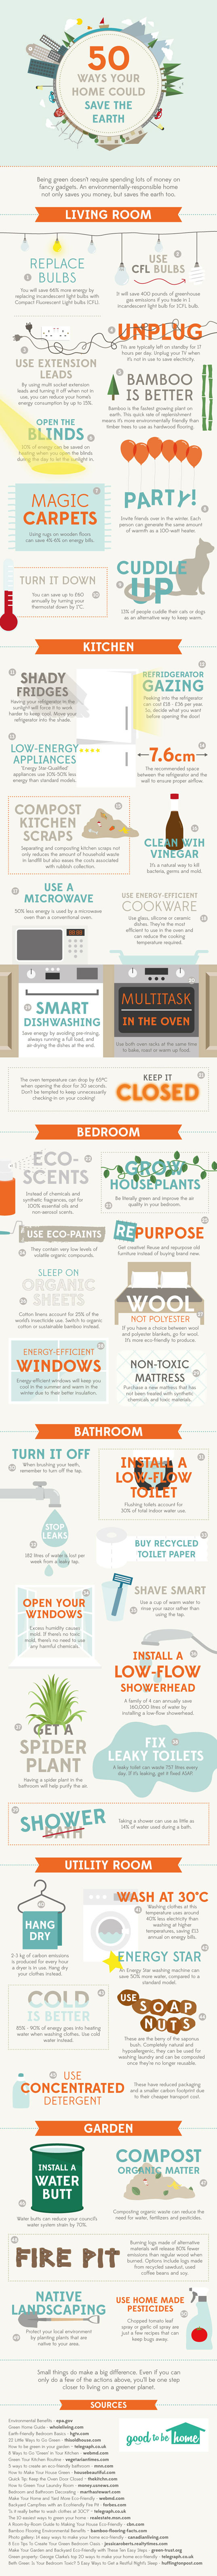 50 ways your home can save the earth, energy efficiency, efficiency, green design, sustainable design, green building, green home, sustainable home, green home tips, energy efficiency tips, energy-efficient house, infographic, good to be home